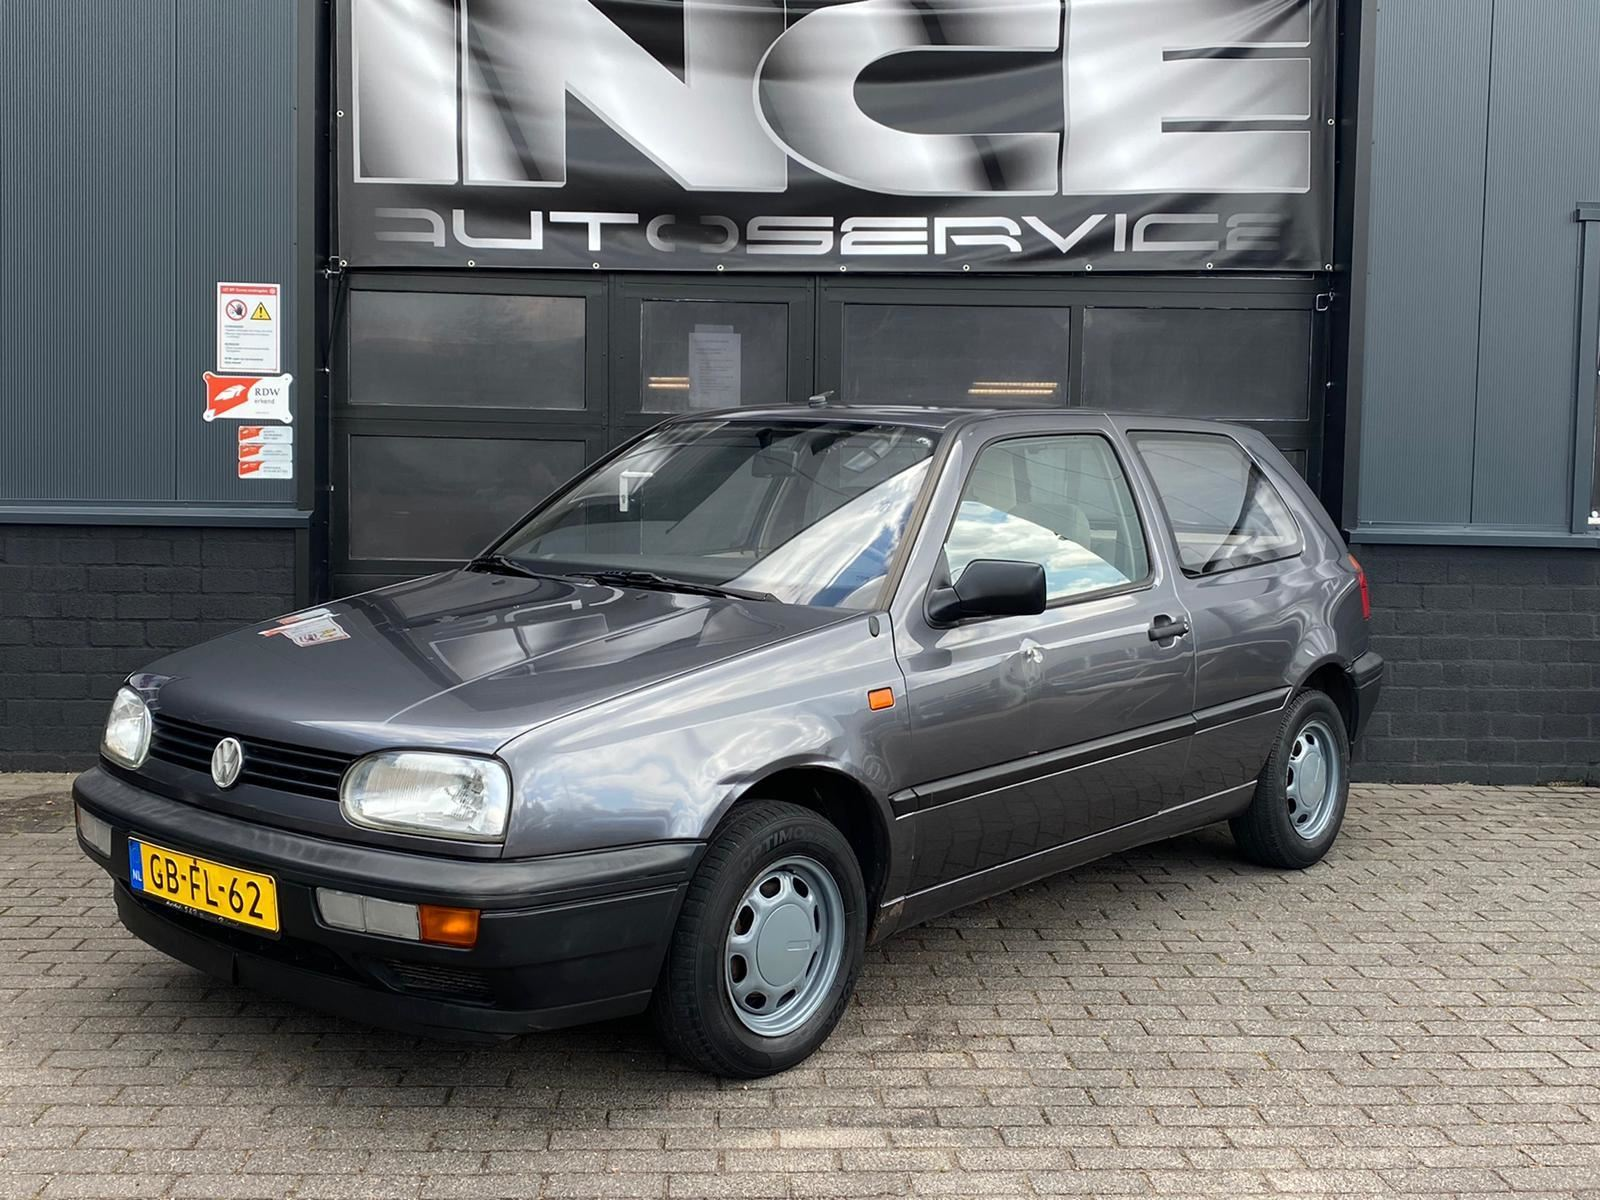 Volkswagen Golf occasion - Ince Autoservice